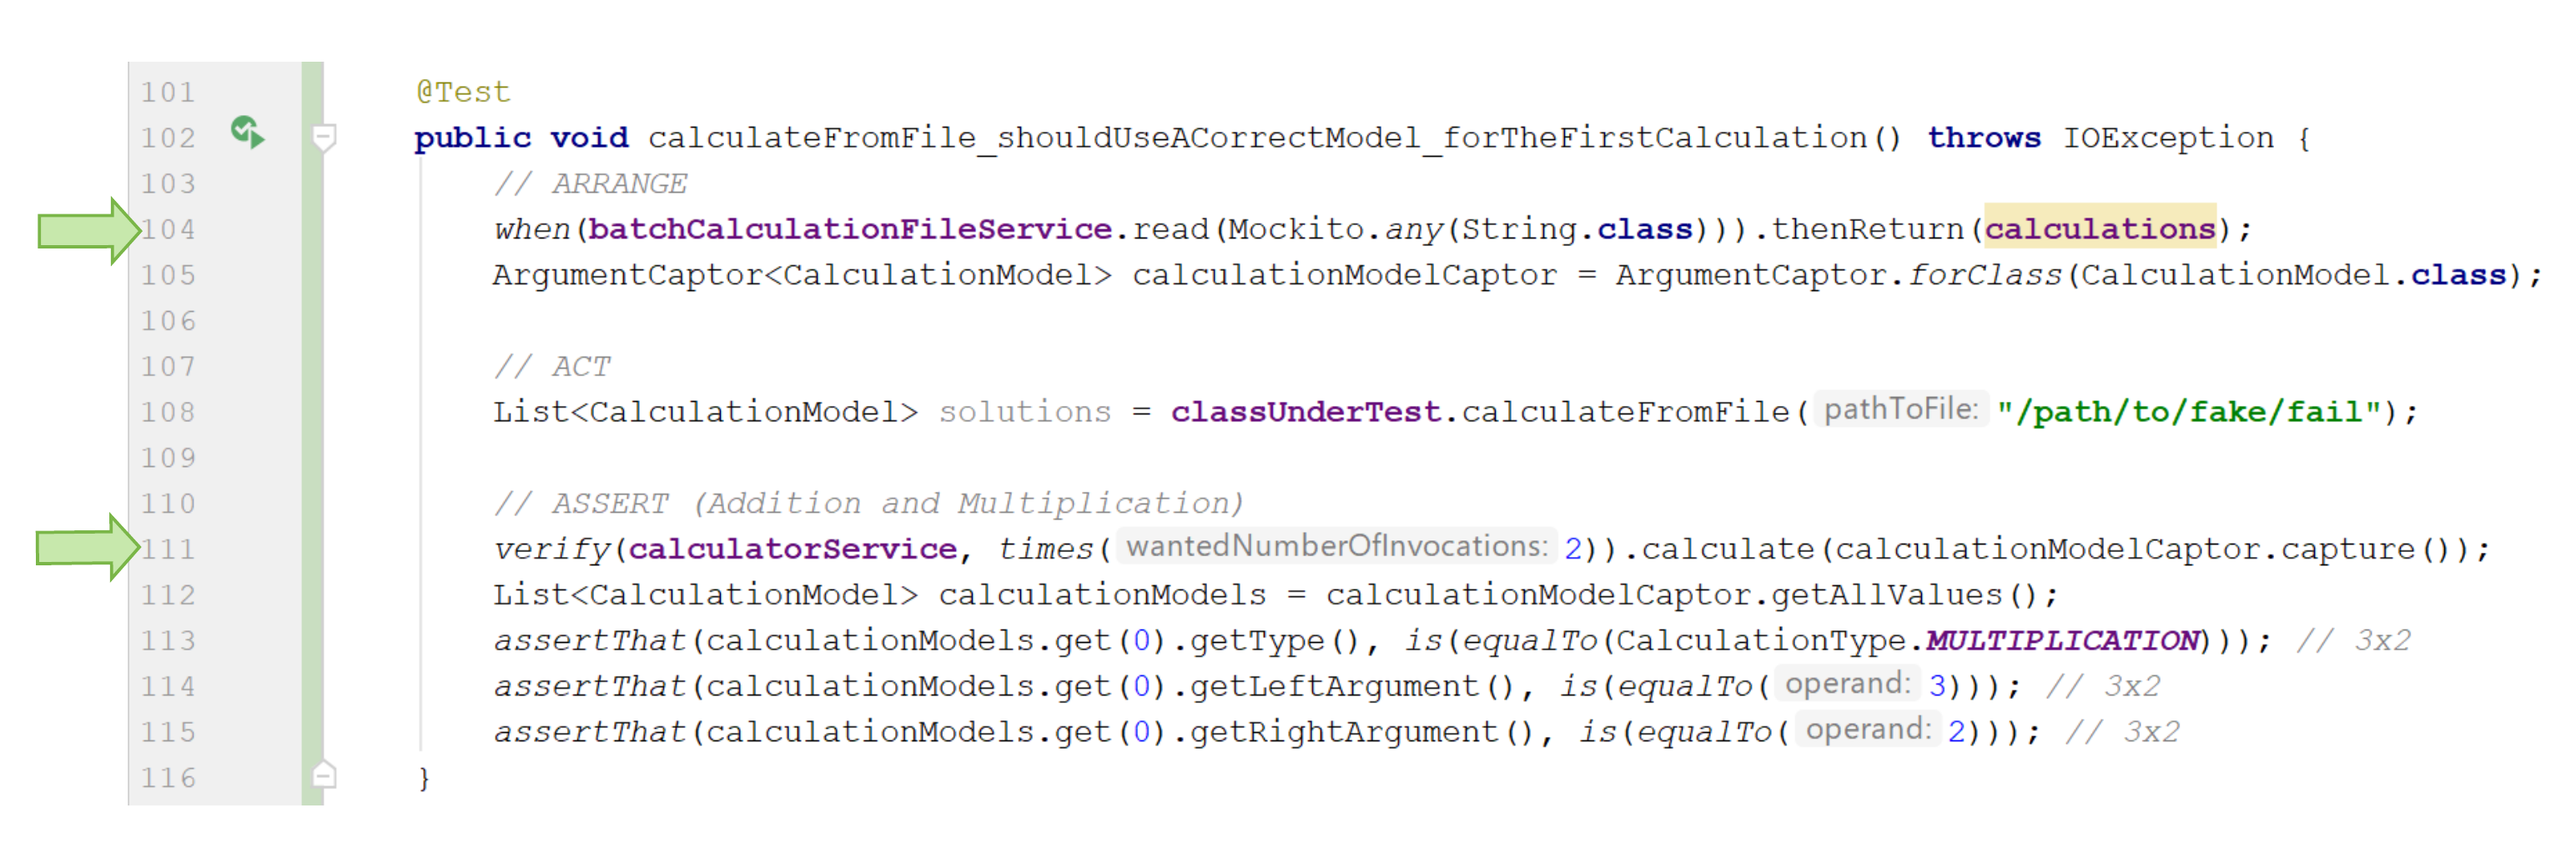 Testing P2 Ch5 Diagram/code snippet 1